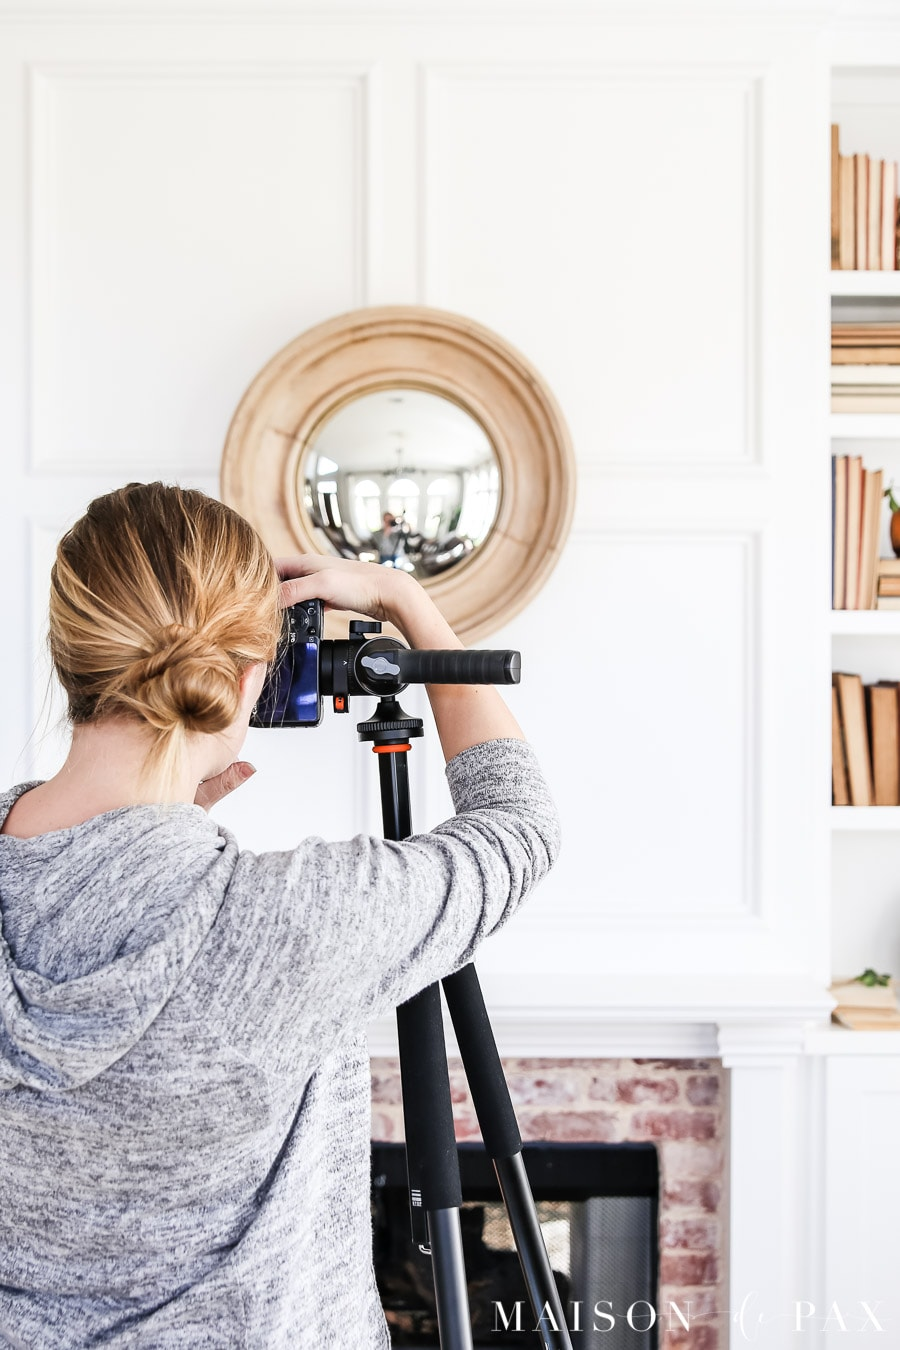 woman photographing fireplace using camera on tripod